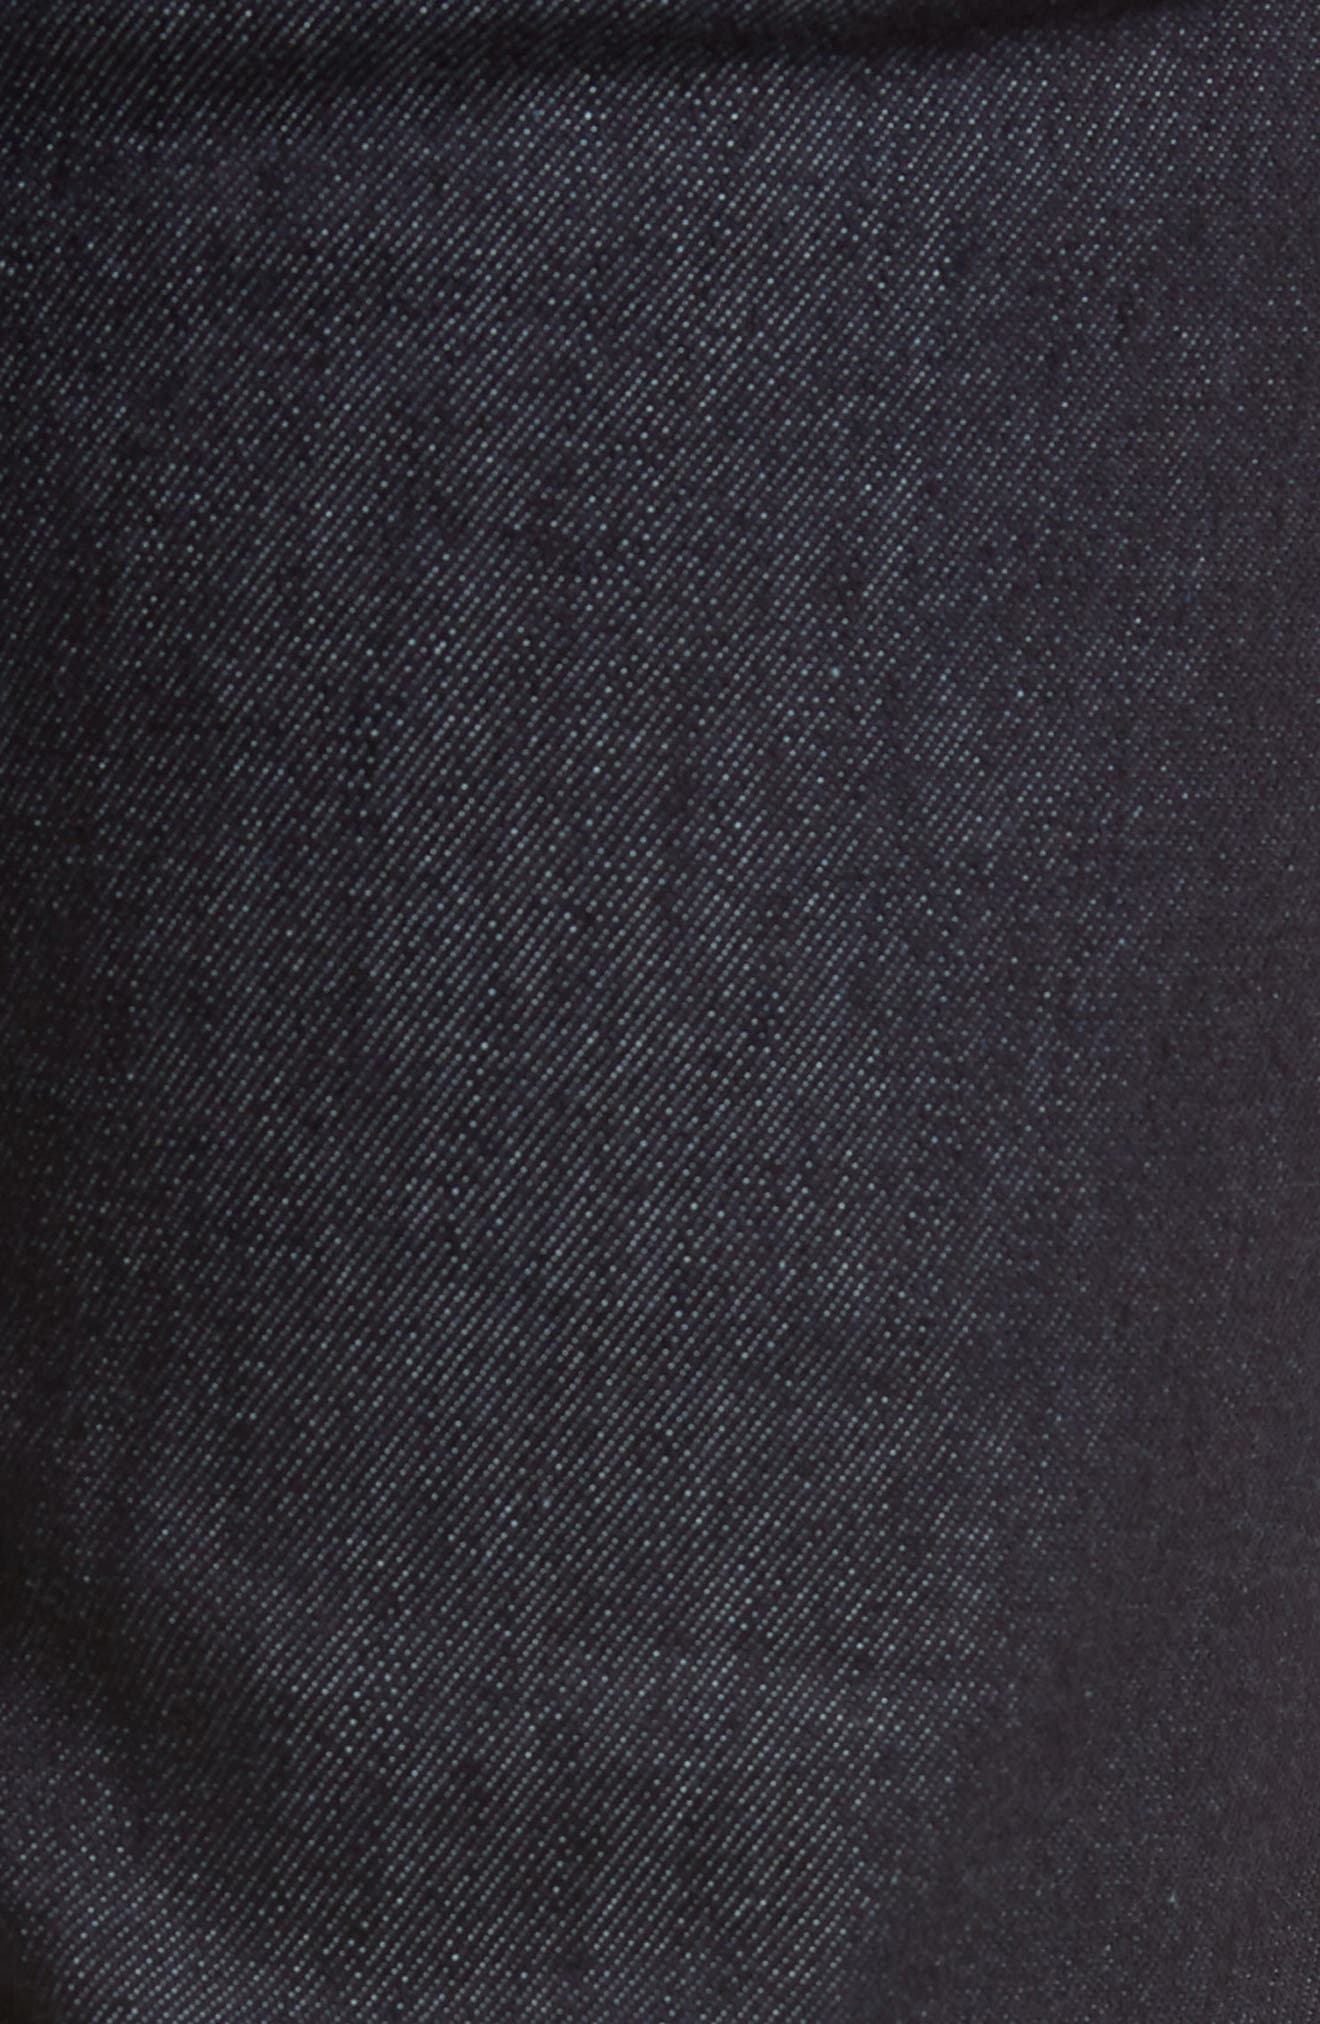 Larkee Relaxed Fit Jeans,                             Alternate thumbnail 5, color,                             Blue